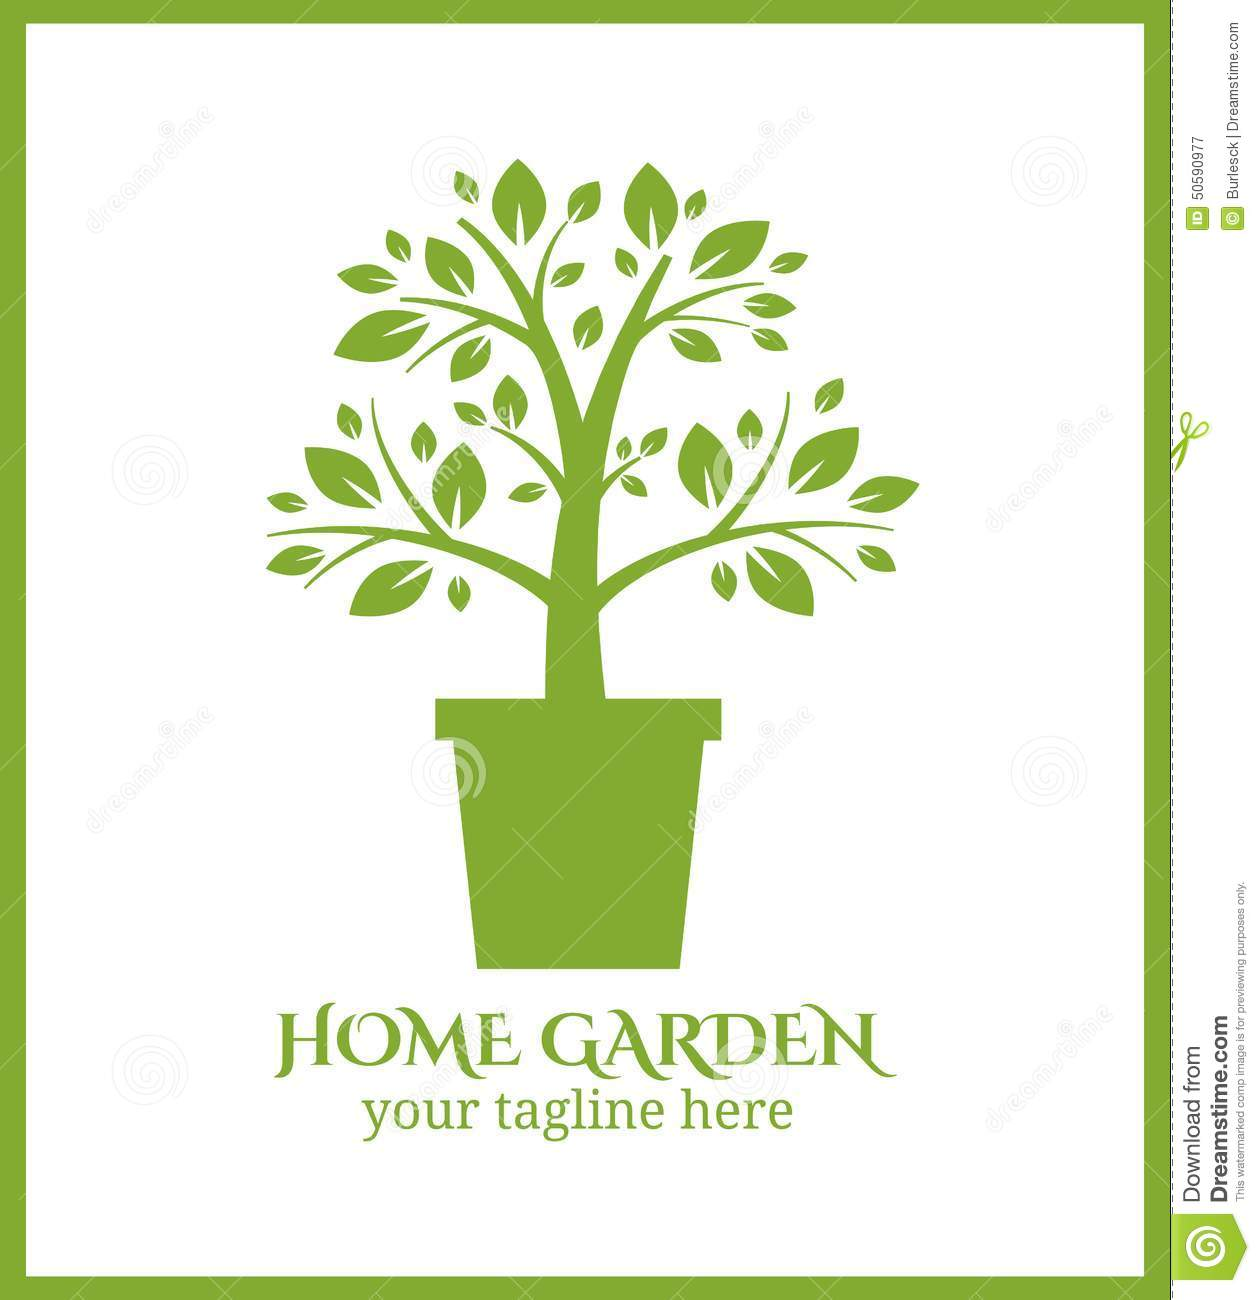 Home garden label tree in pot logo stock vector image Homes and gardens logo